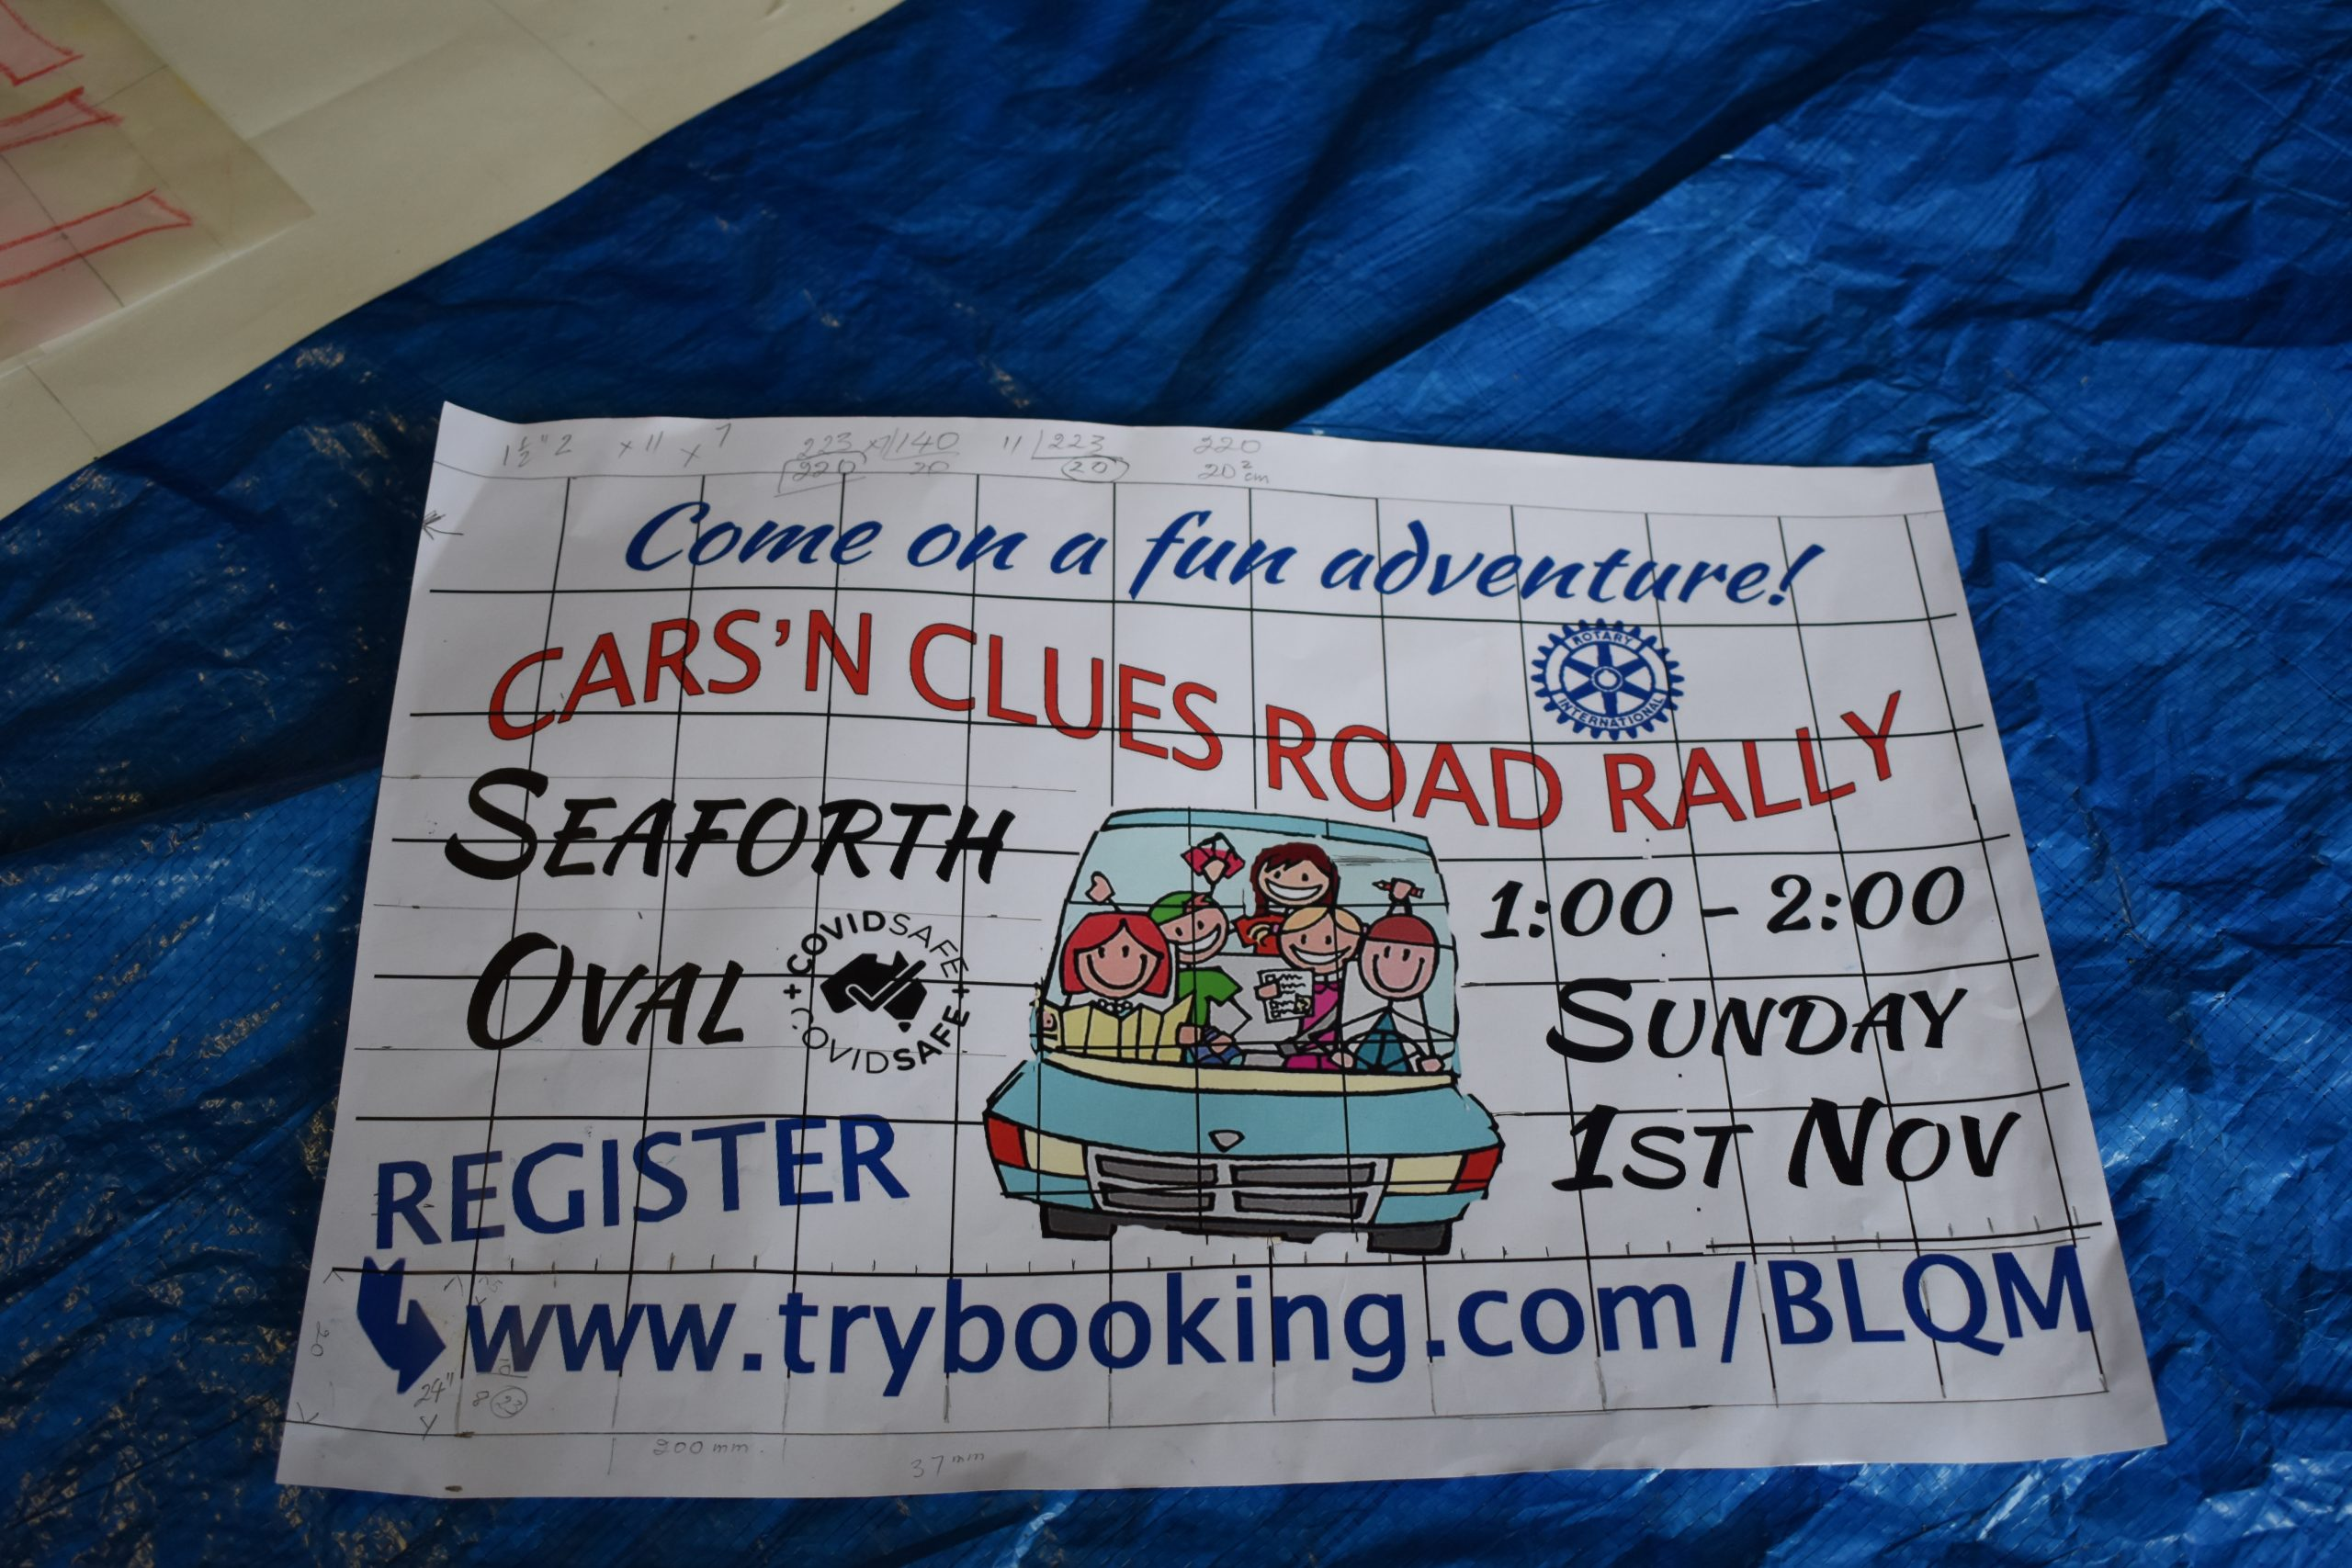 Poster for Cars N Clues Rally